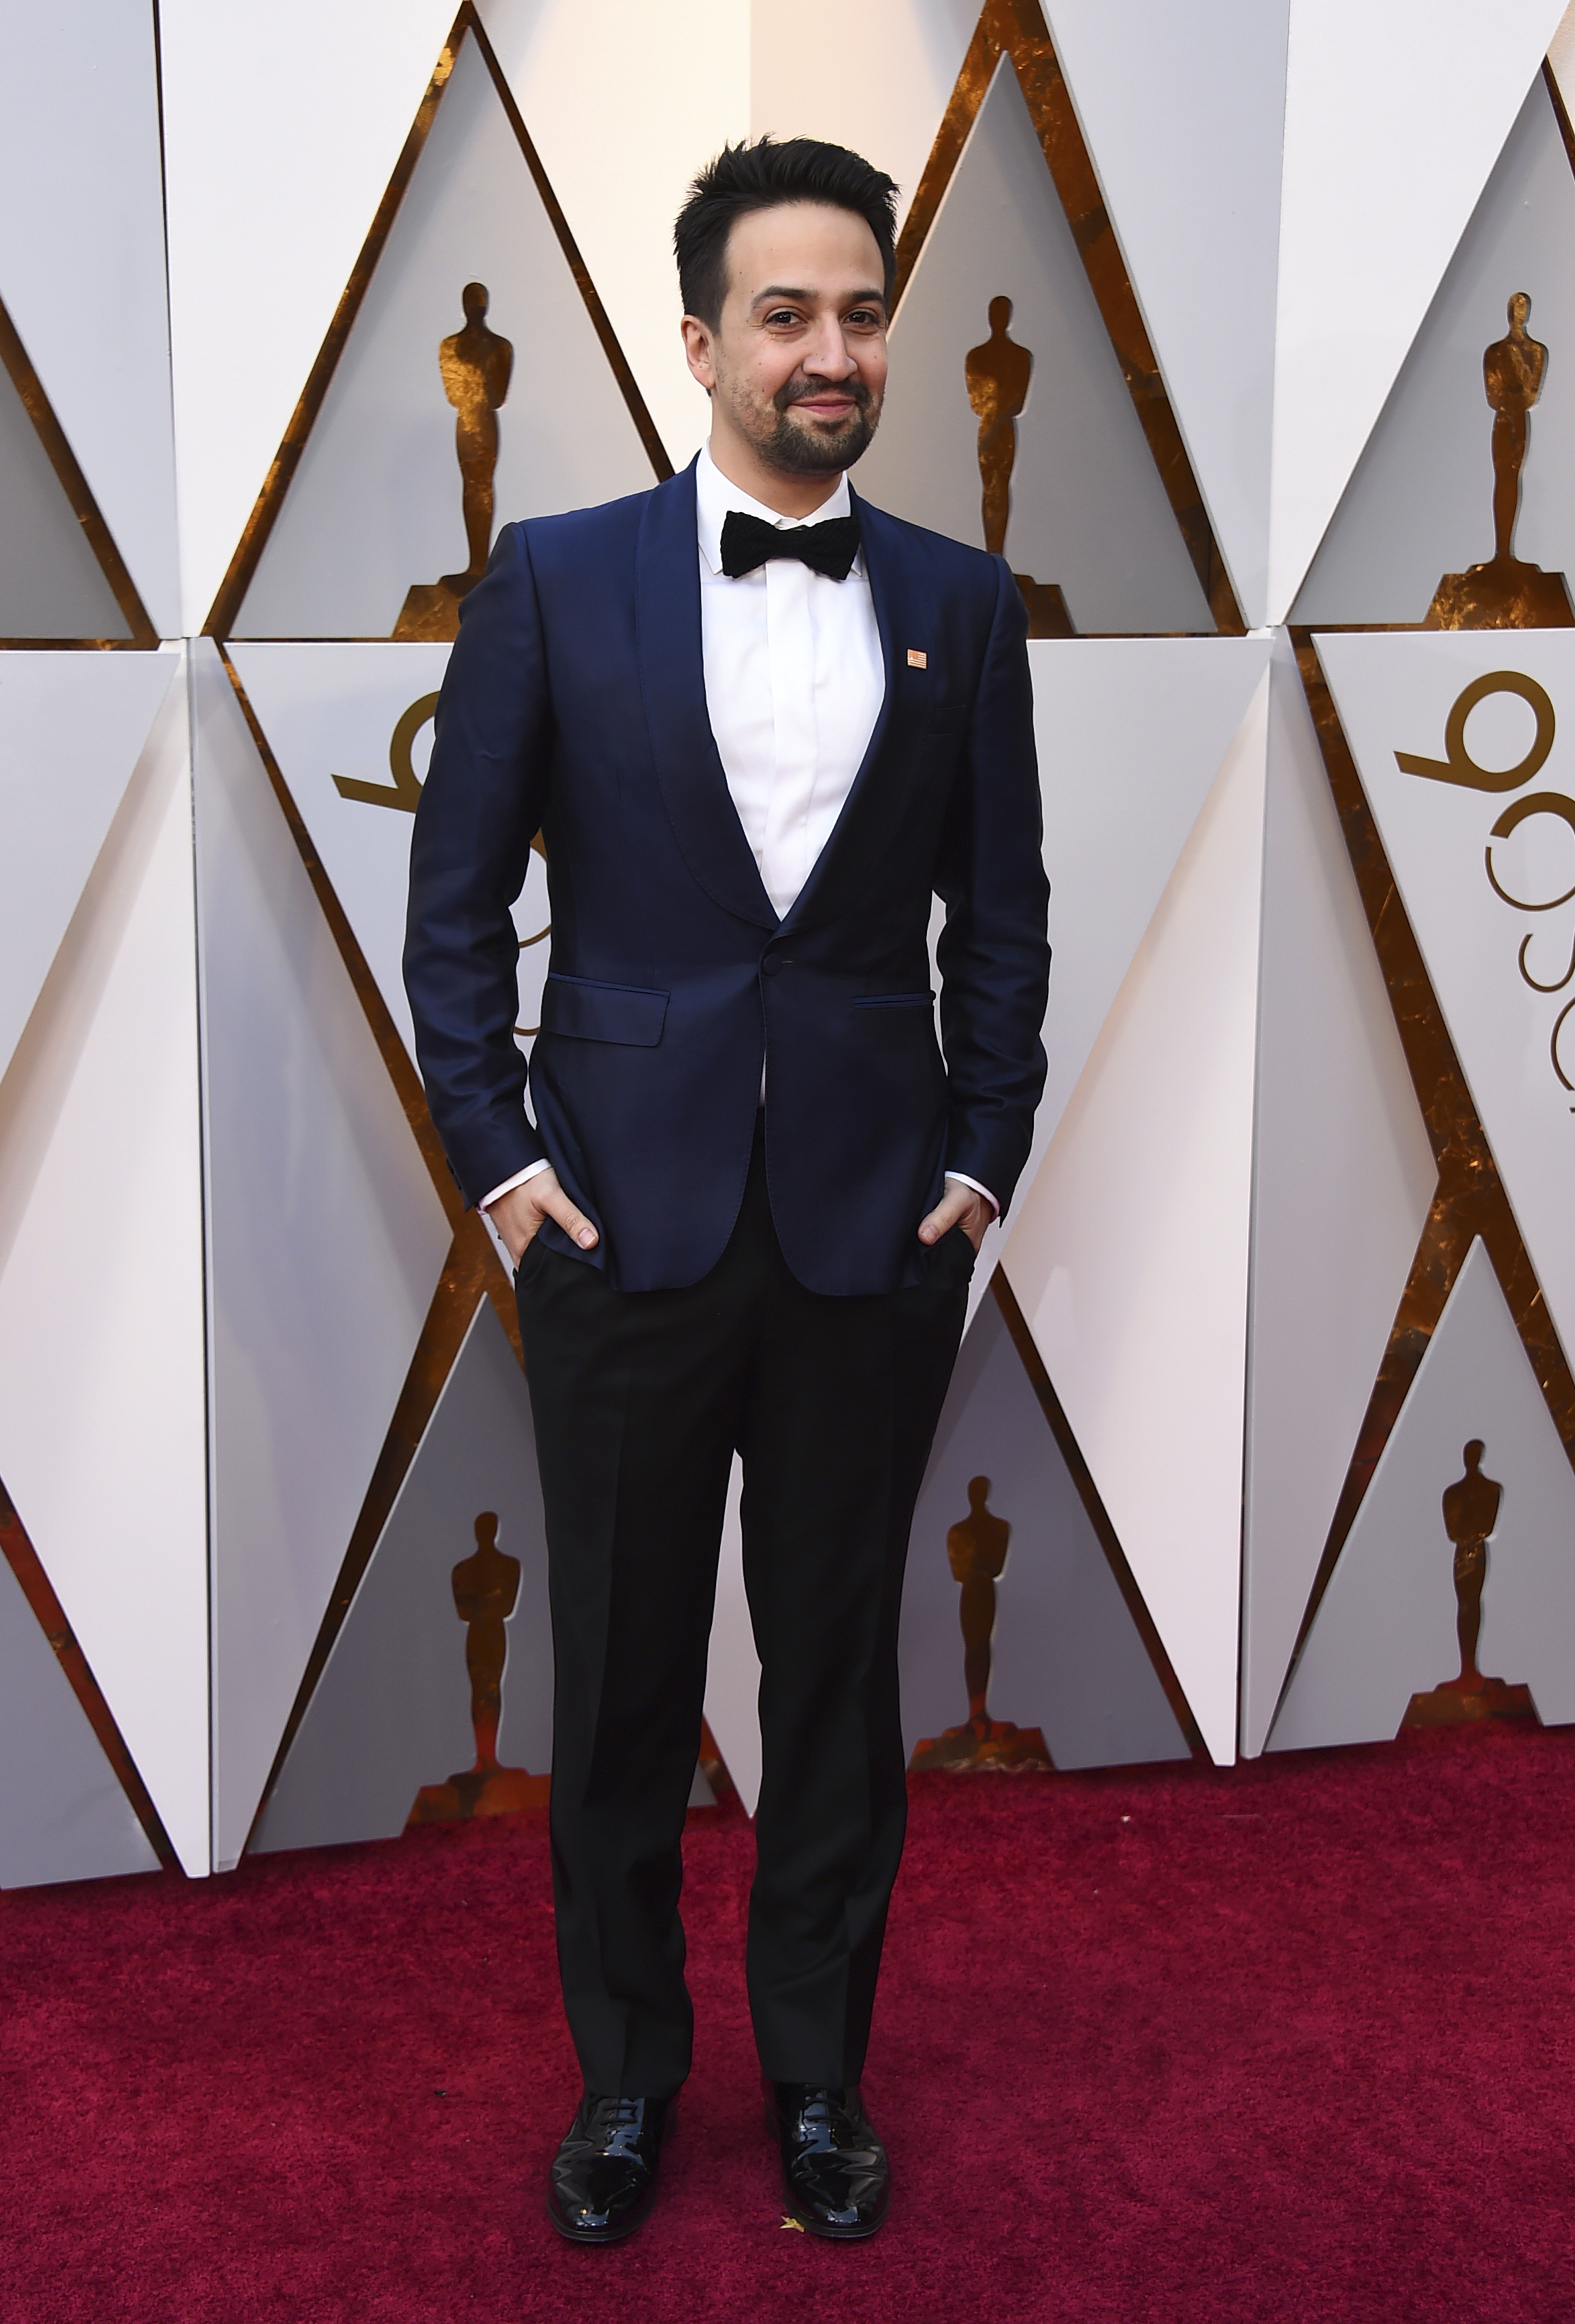 "<div class=""meta image-caption""><div class=""origin-logo origin-image none""><span>none</span></div><span class=""caption-text"">Lin-Manuel Miranda arrives at the Oscars on Sunday, March 4, 2018, at the Dolby Theatre in Los Angeles. (Jordan Strauss/Invision/AP)</span></div>"